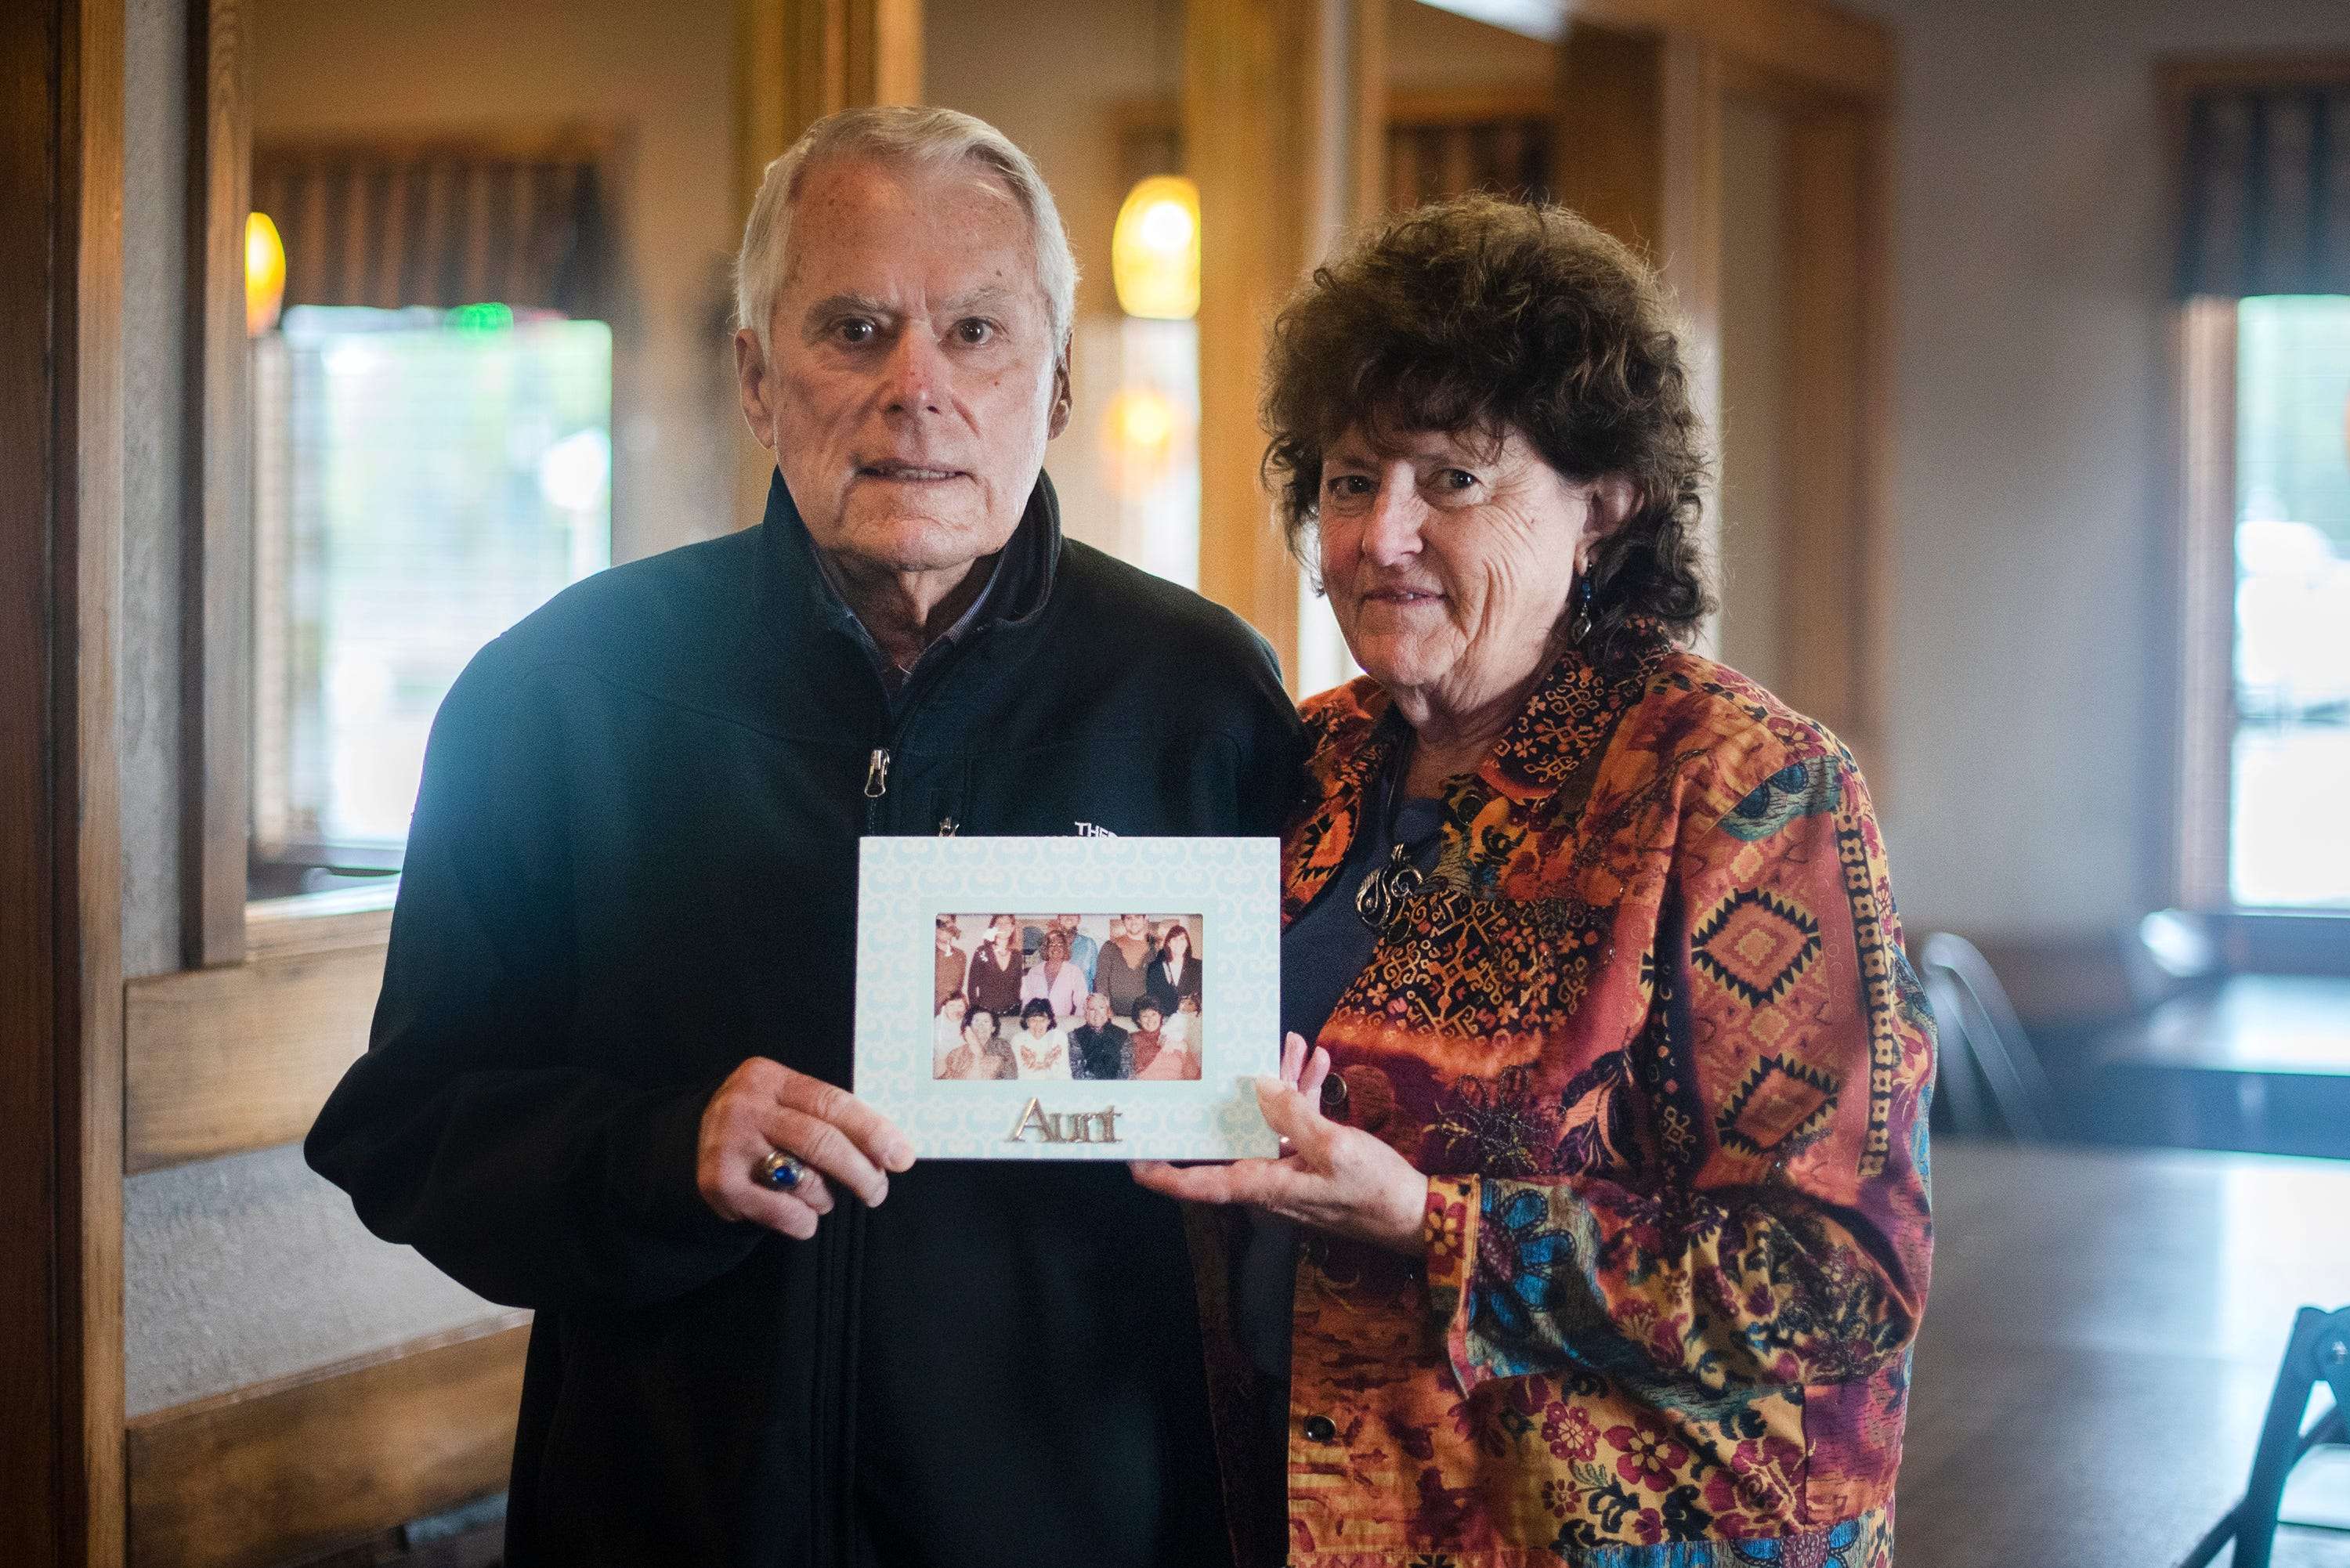 Walt Bussey and his wife, Cindy, hold a portrait of Walt's aunt Katie Jacobs, who died of COVID-19.